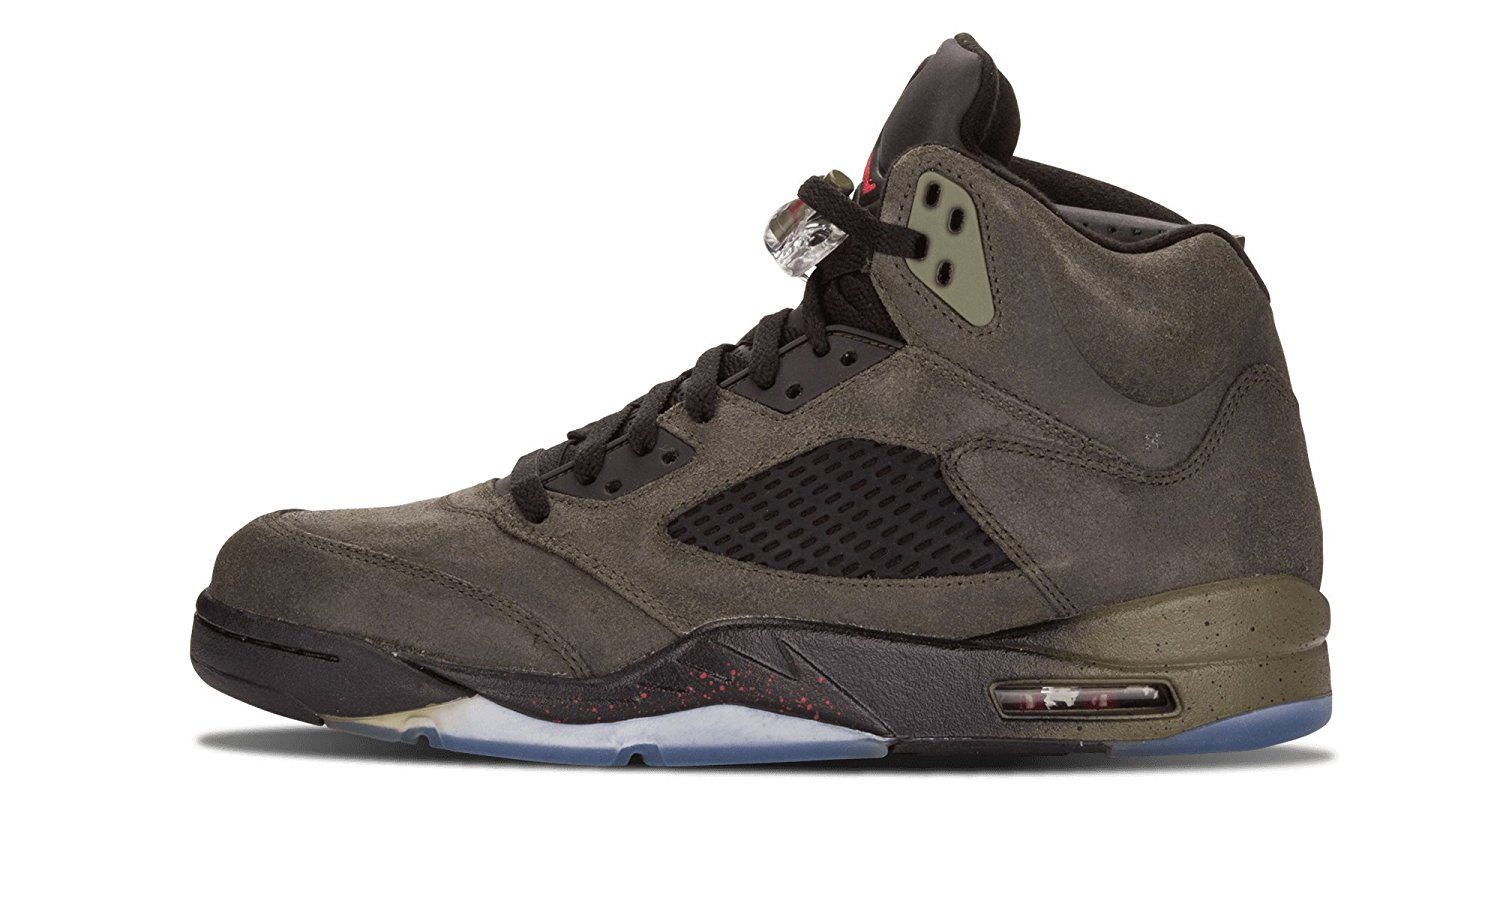 """Nike Mens Air Jordan 5 Retro """"Fear"""" Sequoia/Fire Red Leather basketball-shoes Size 14"""